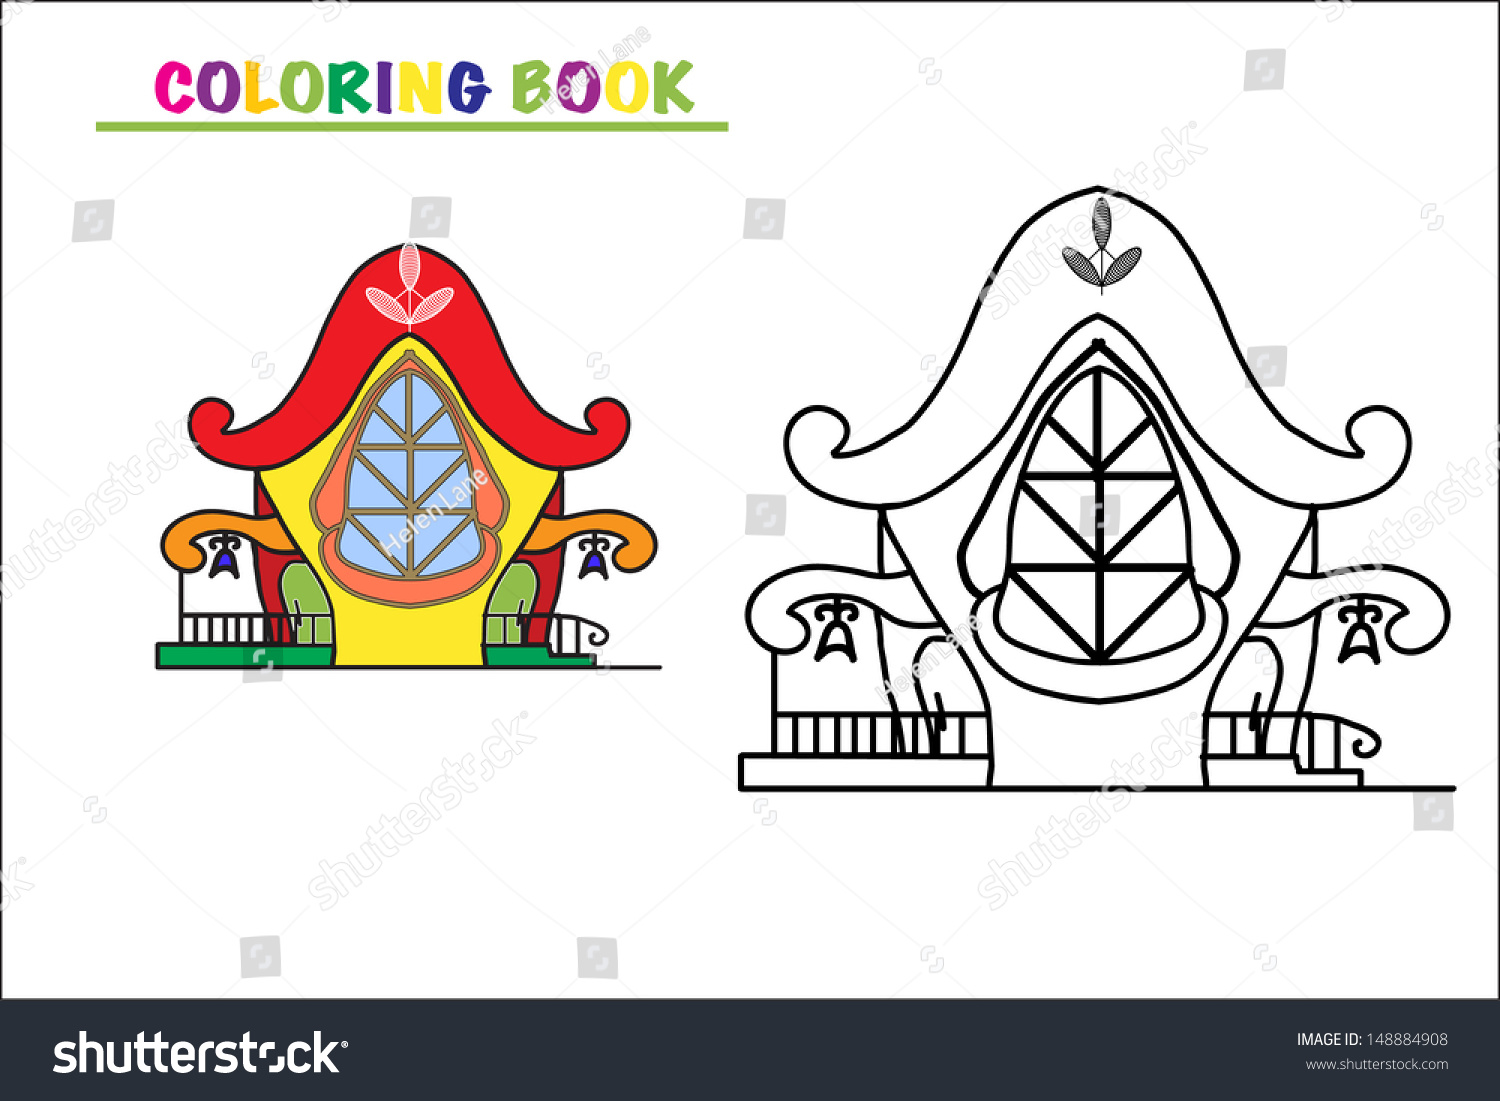 Coloring Book Page Cartoon Illustration Small Stock Vector